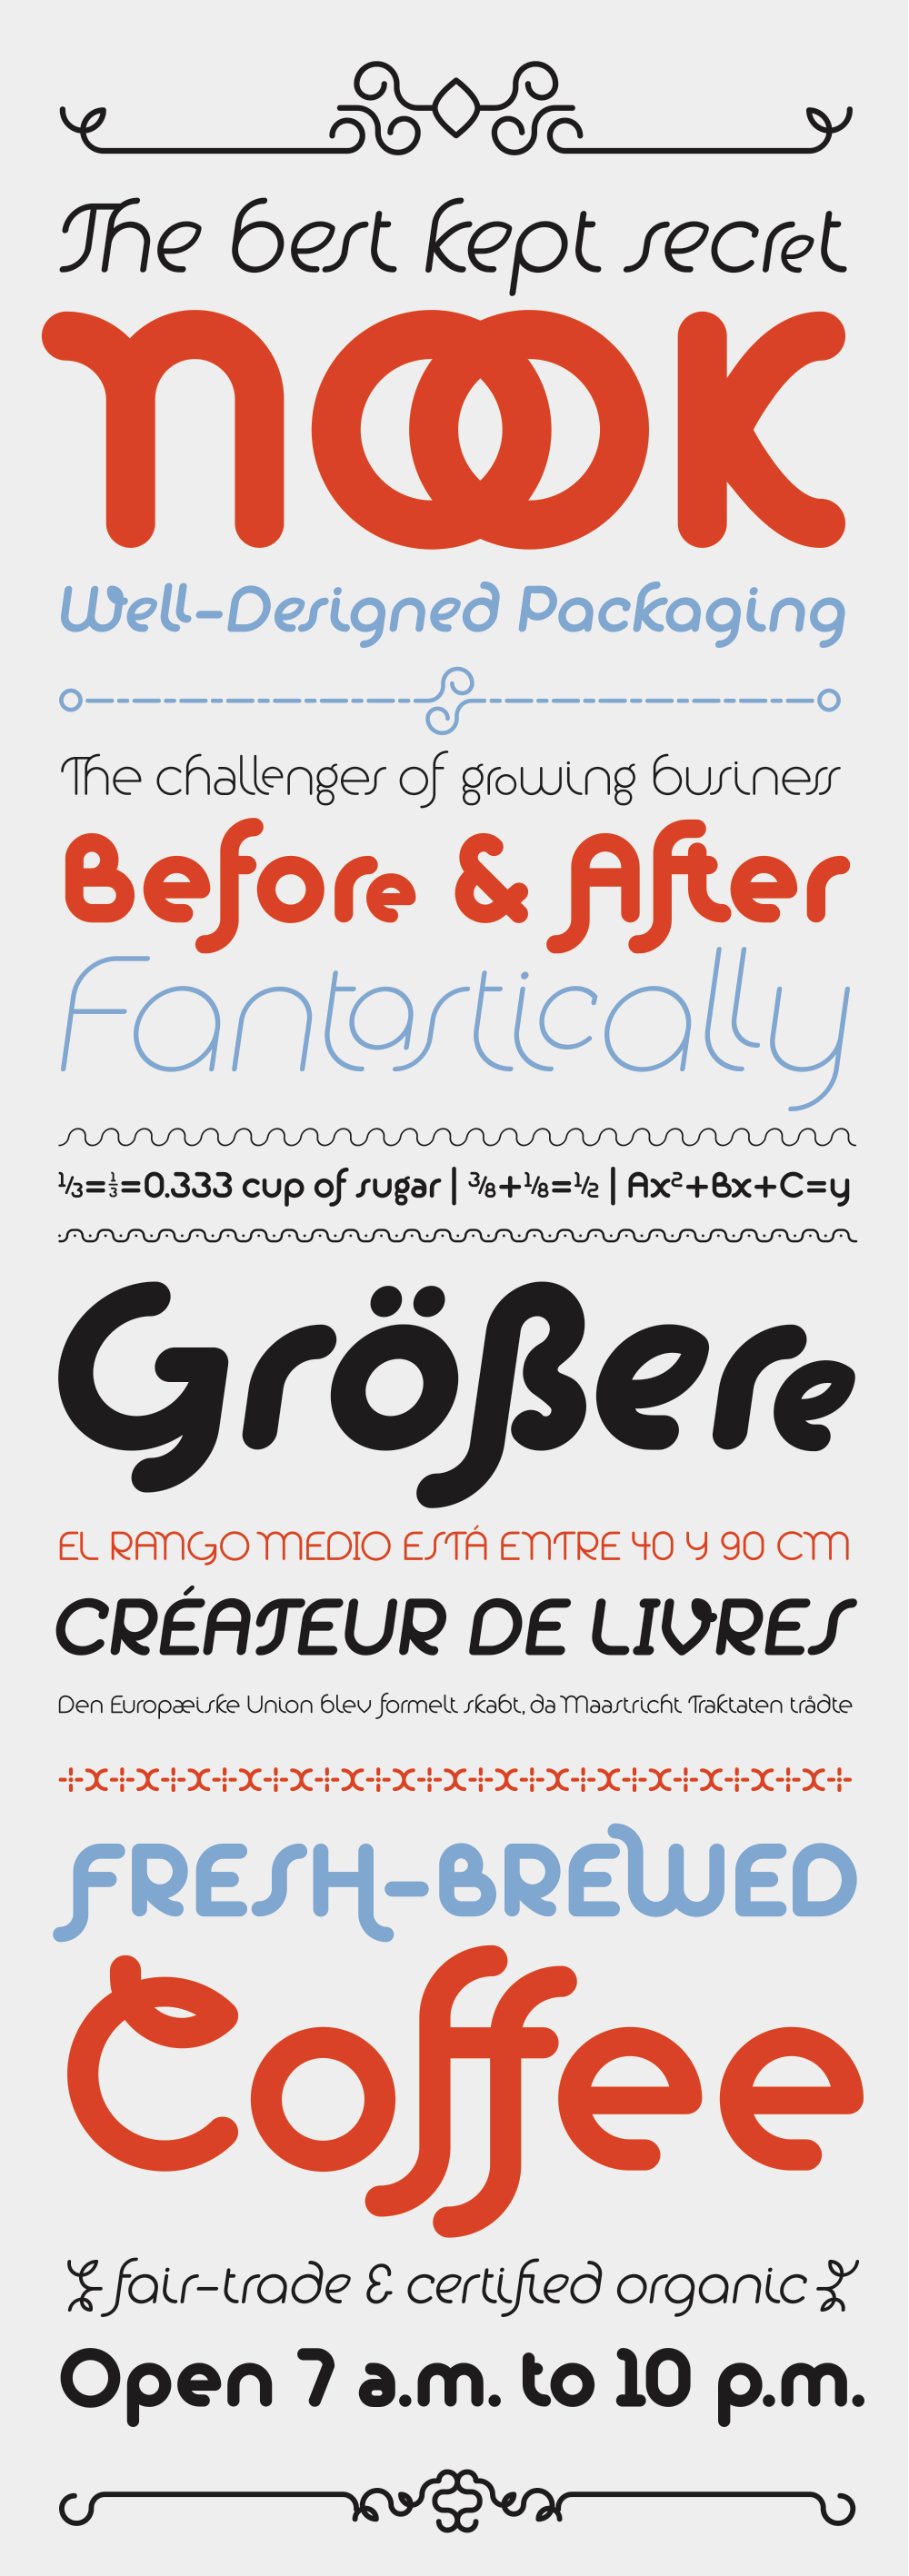 The above specimen was typeset entirely within one text box using the combination of Alio Pro and Alio Decor.